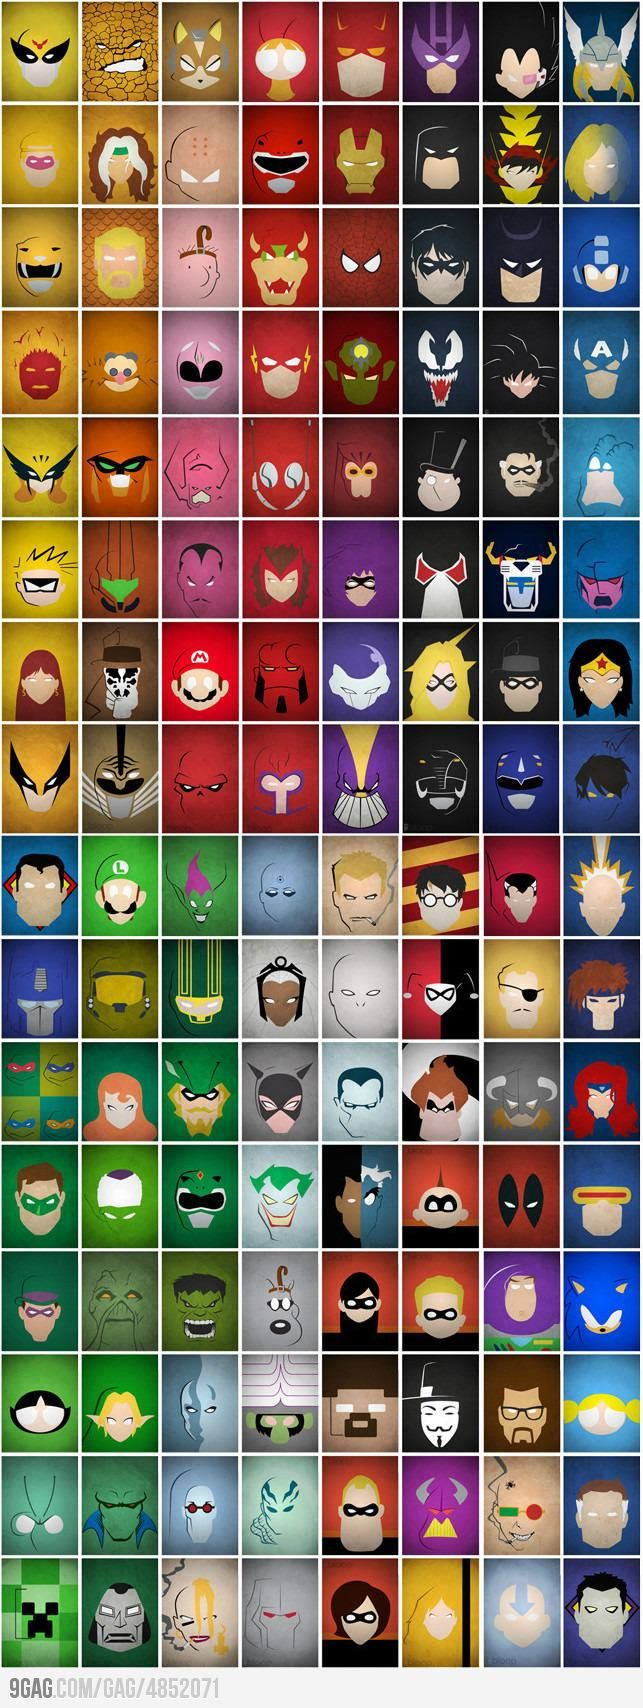 Minimalist Villains and Super Heroes